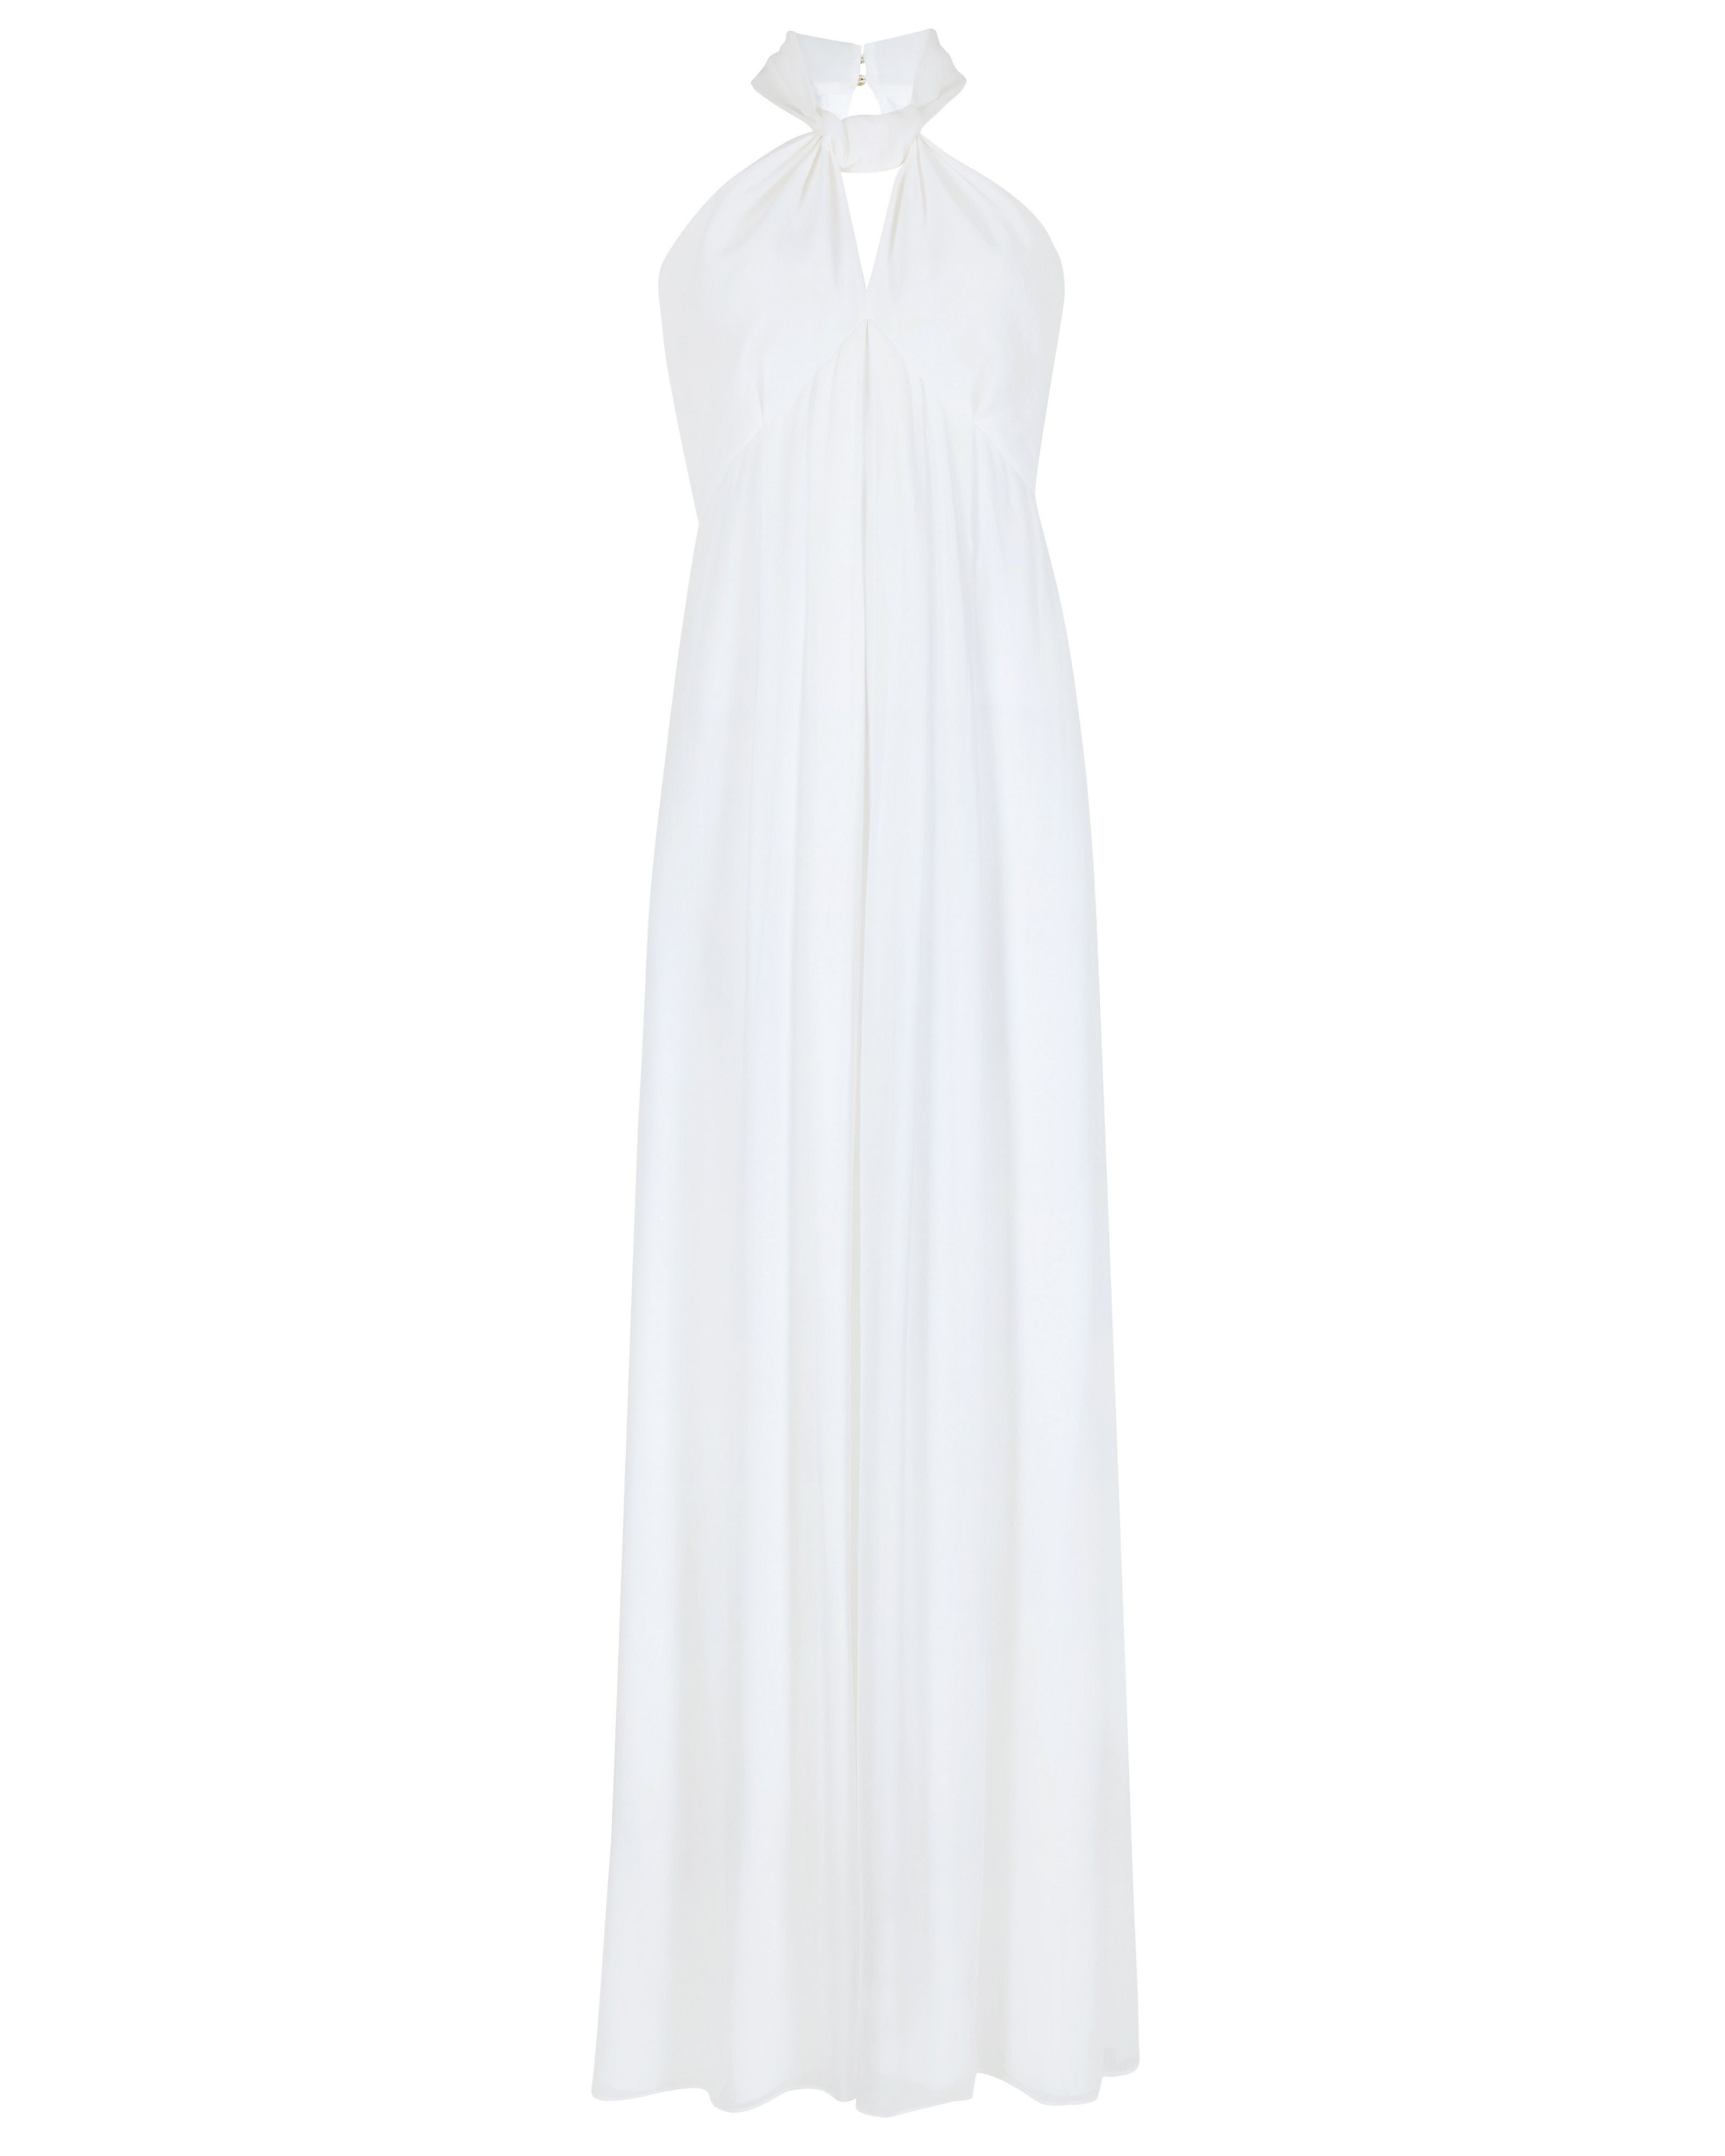 Ted baker quinie knot neck dress in white lyst gallery mightylinksfo